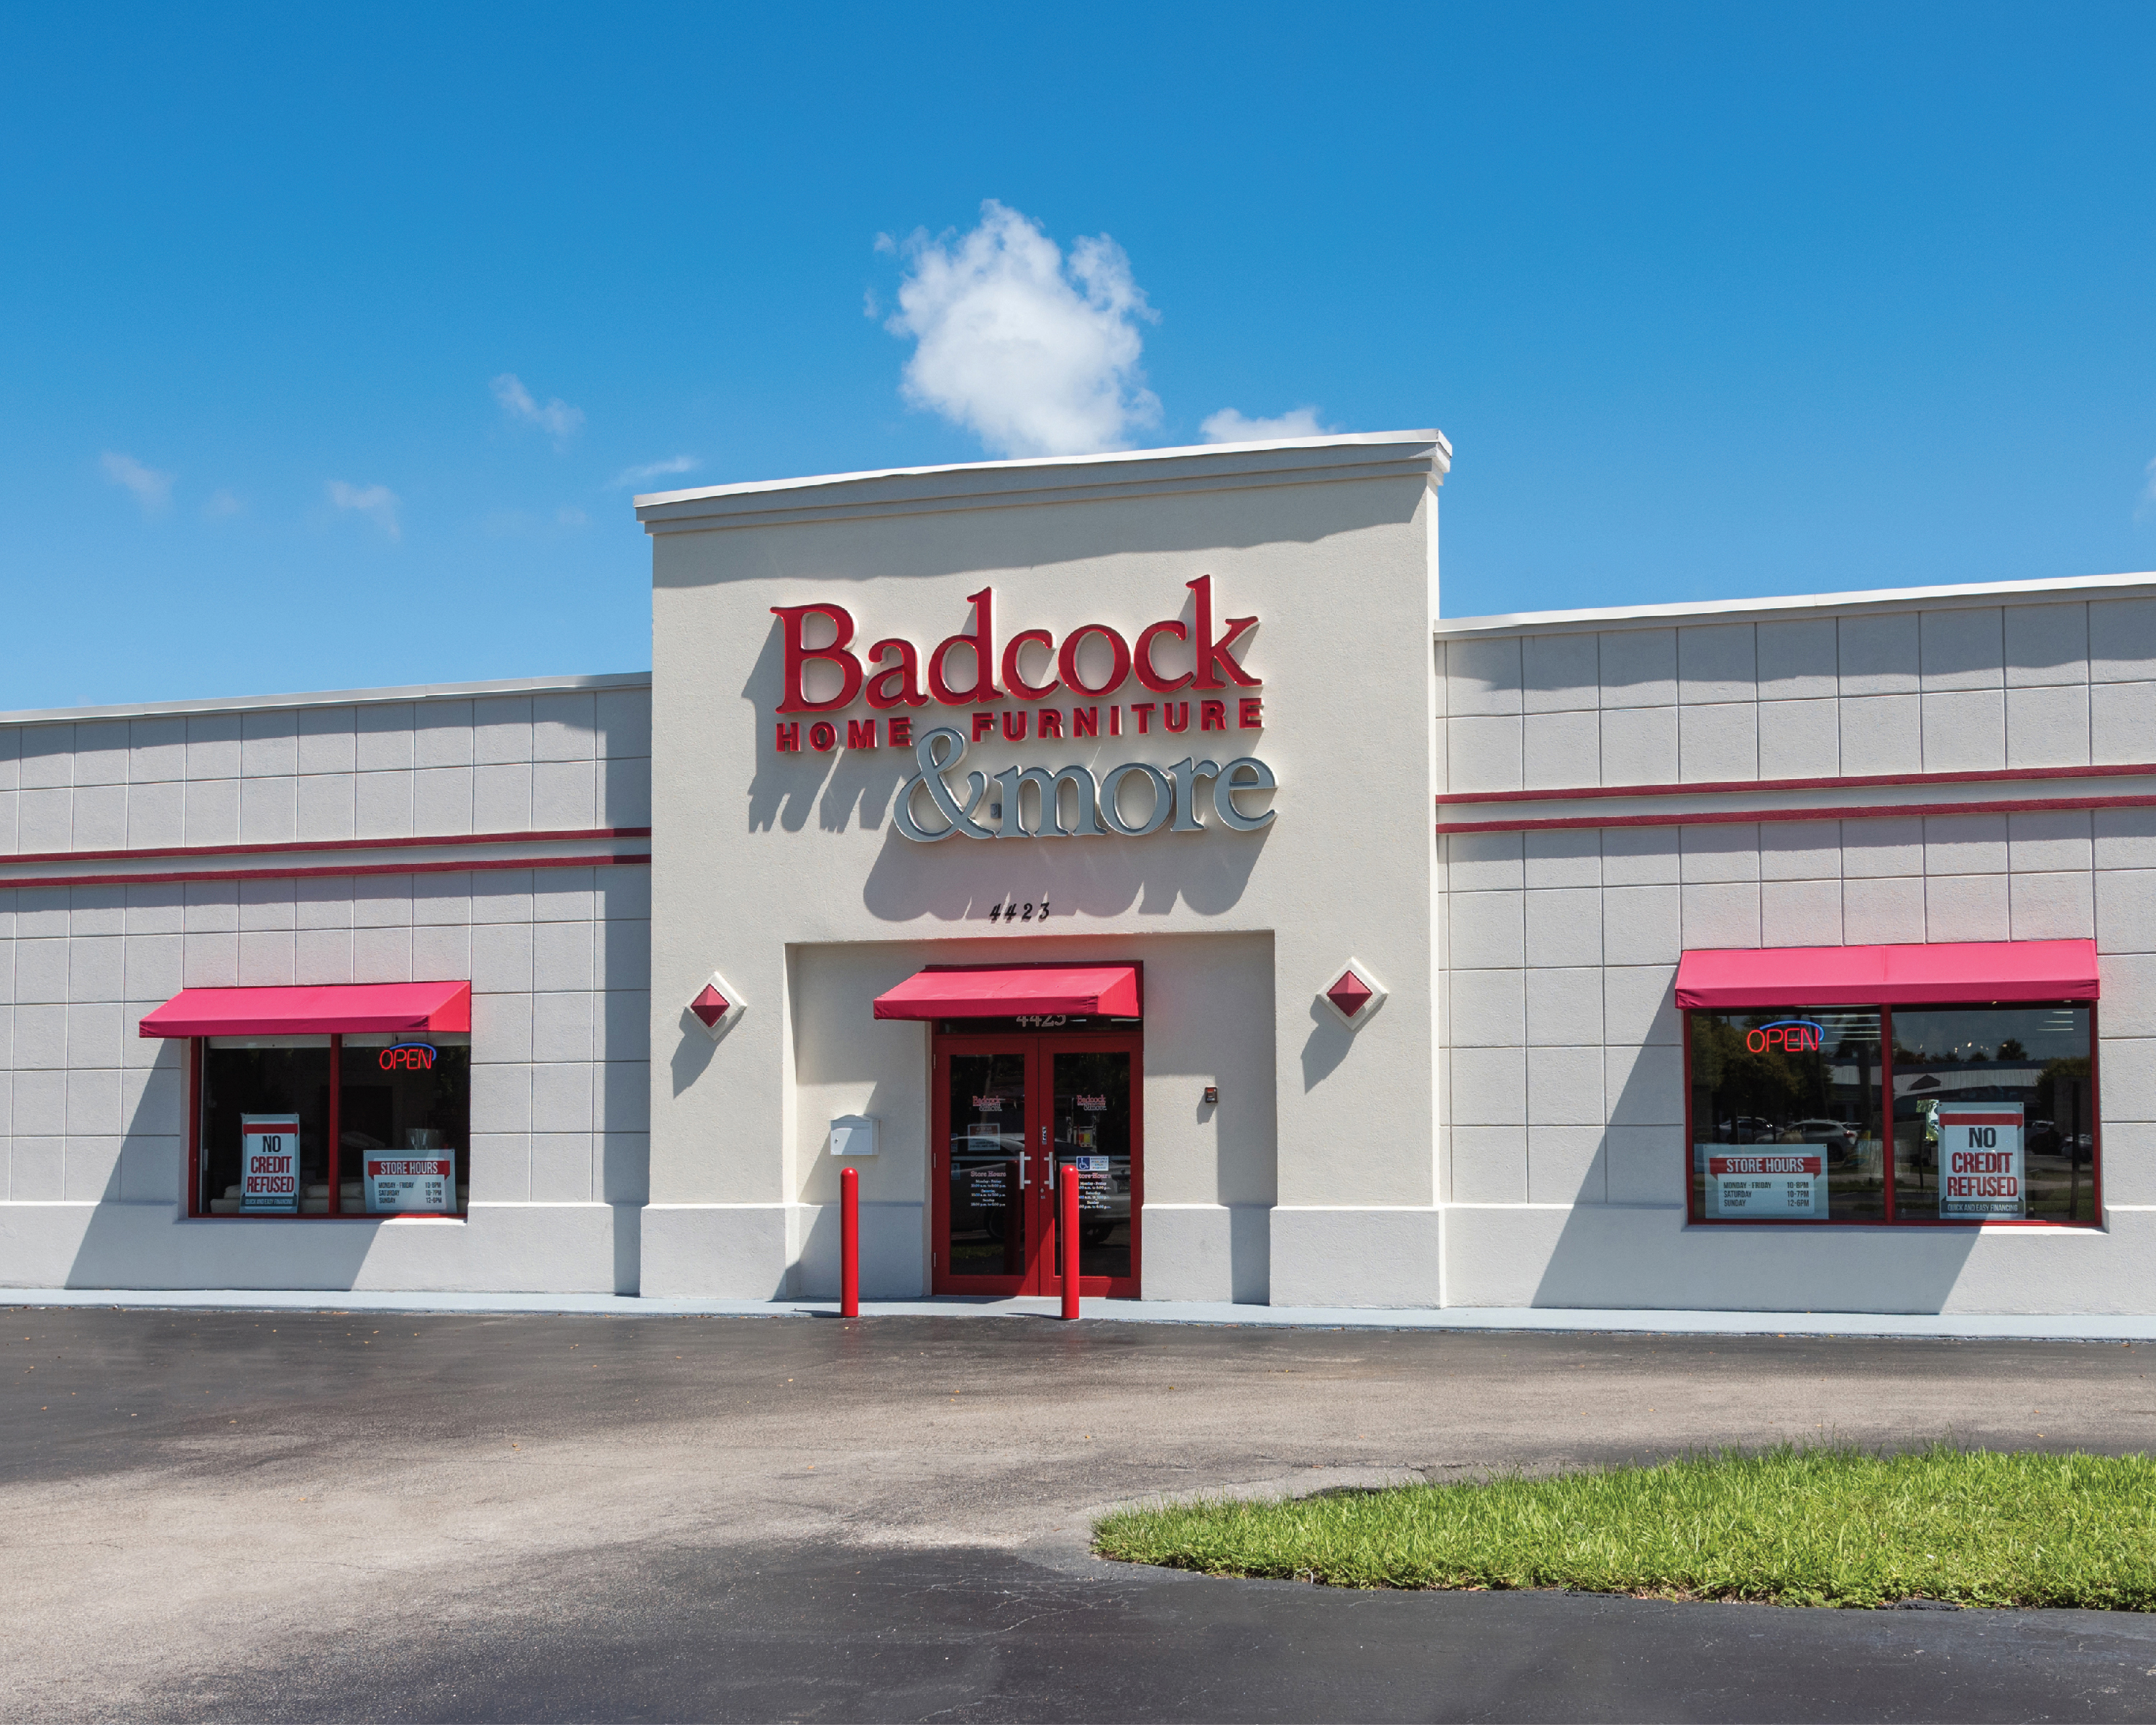 Badcock Home Furniture More Of South Florida 4423 Cherry Rd West Palm Beach Fl 33409